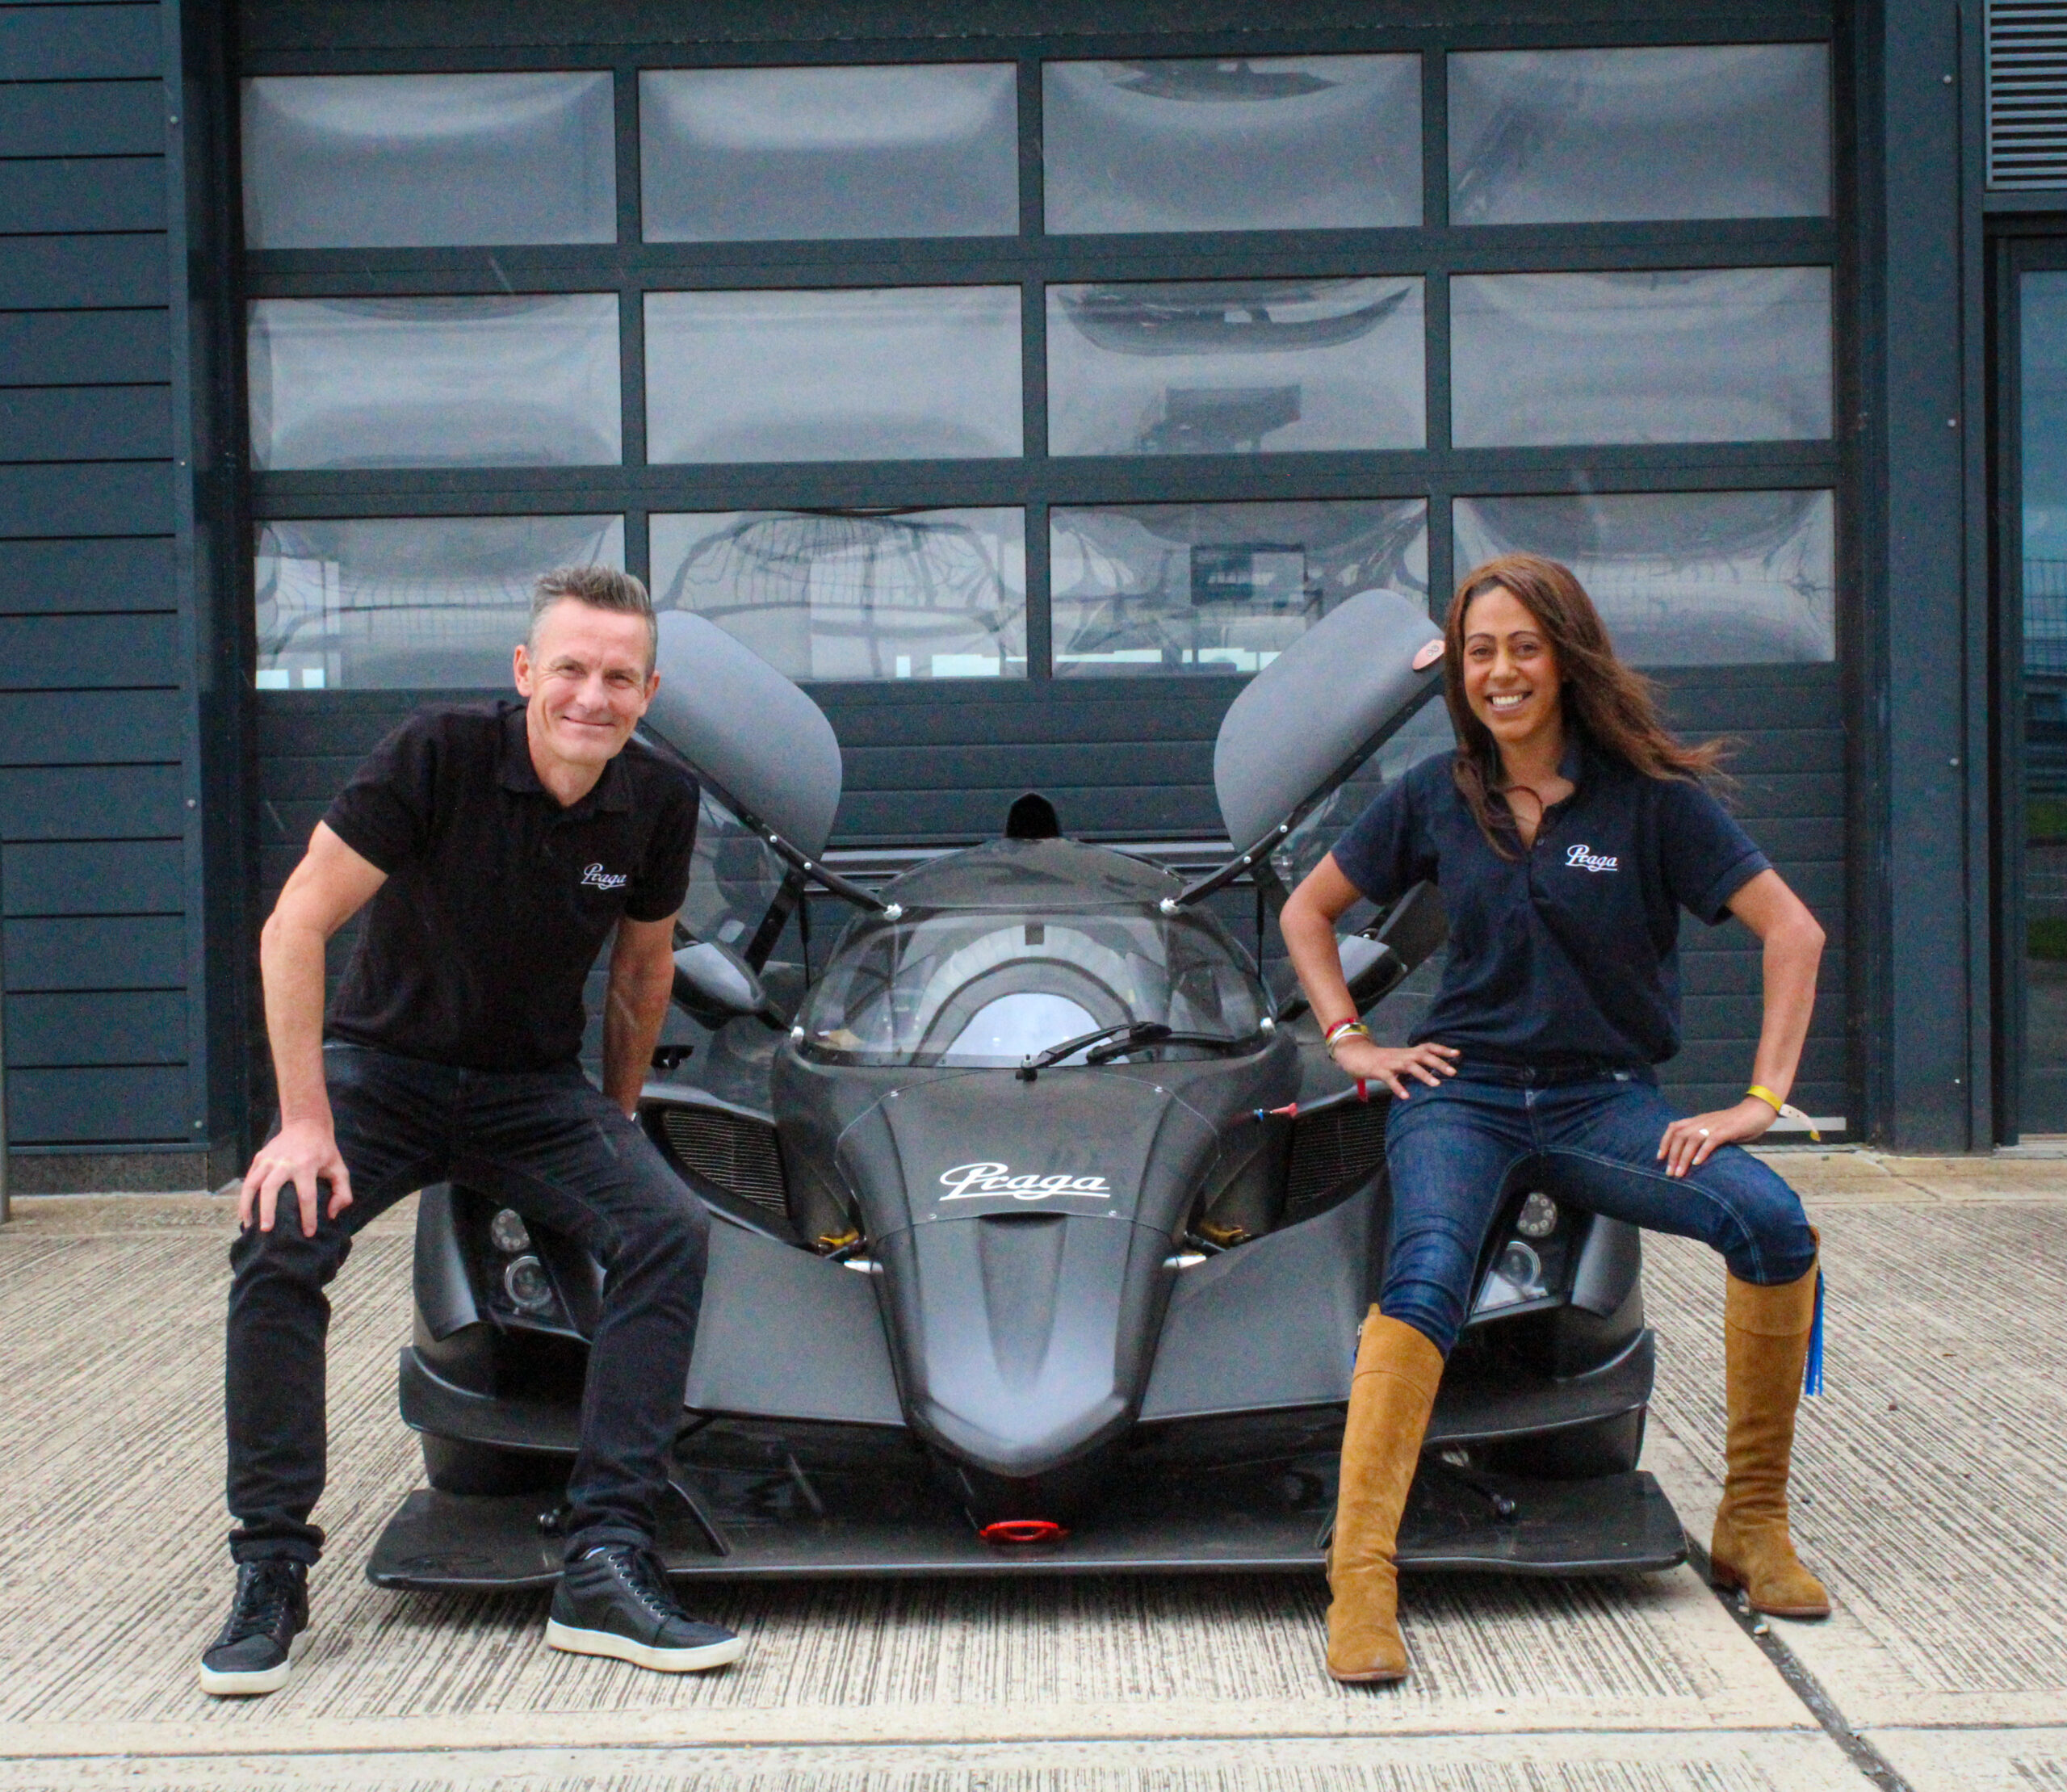 Praga | Praga Cars UK growth plans gather pace with appointment of new Motorsport Manager